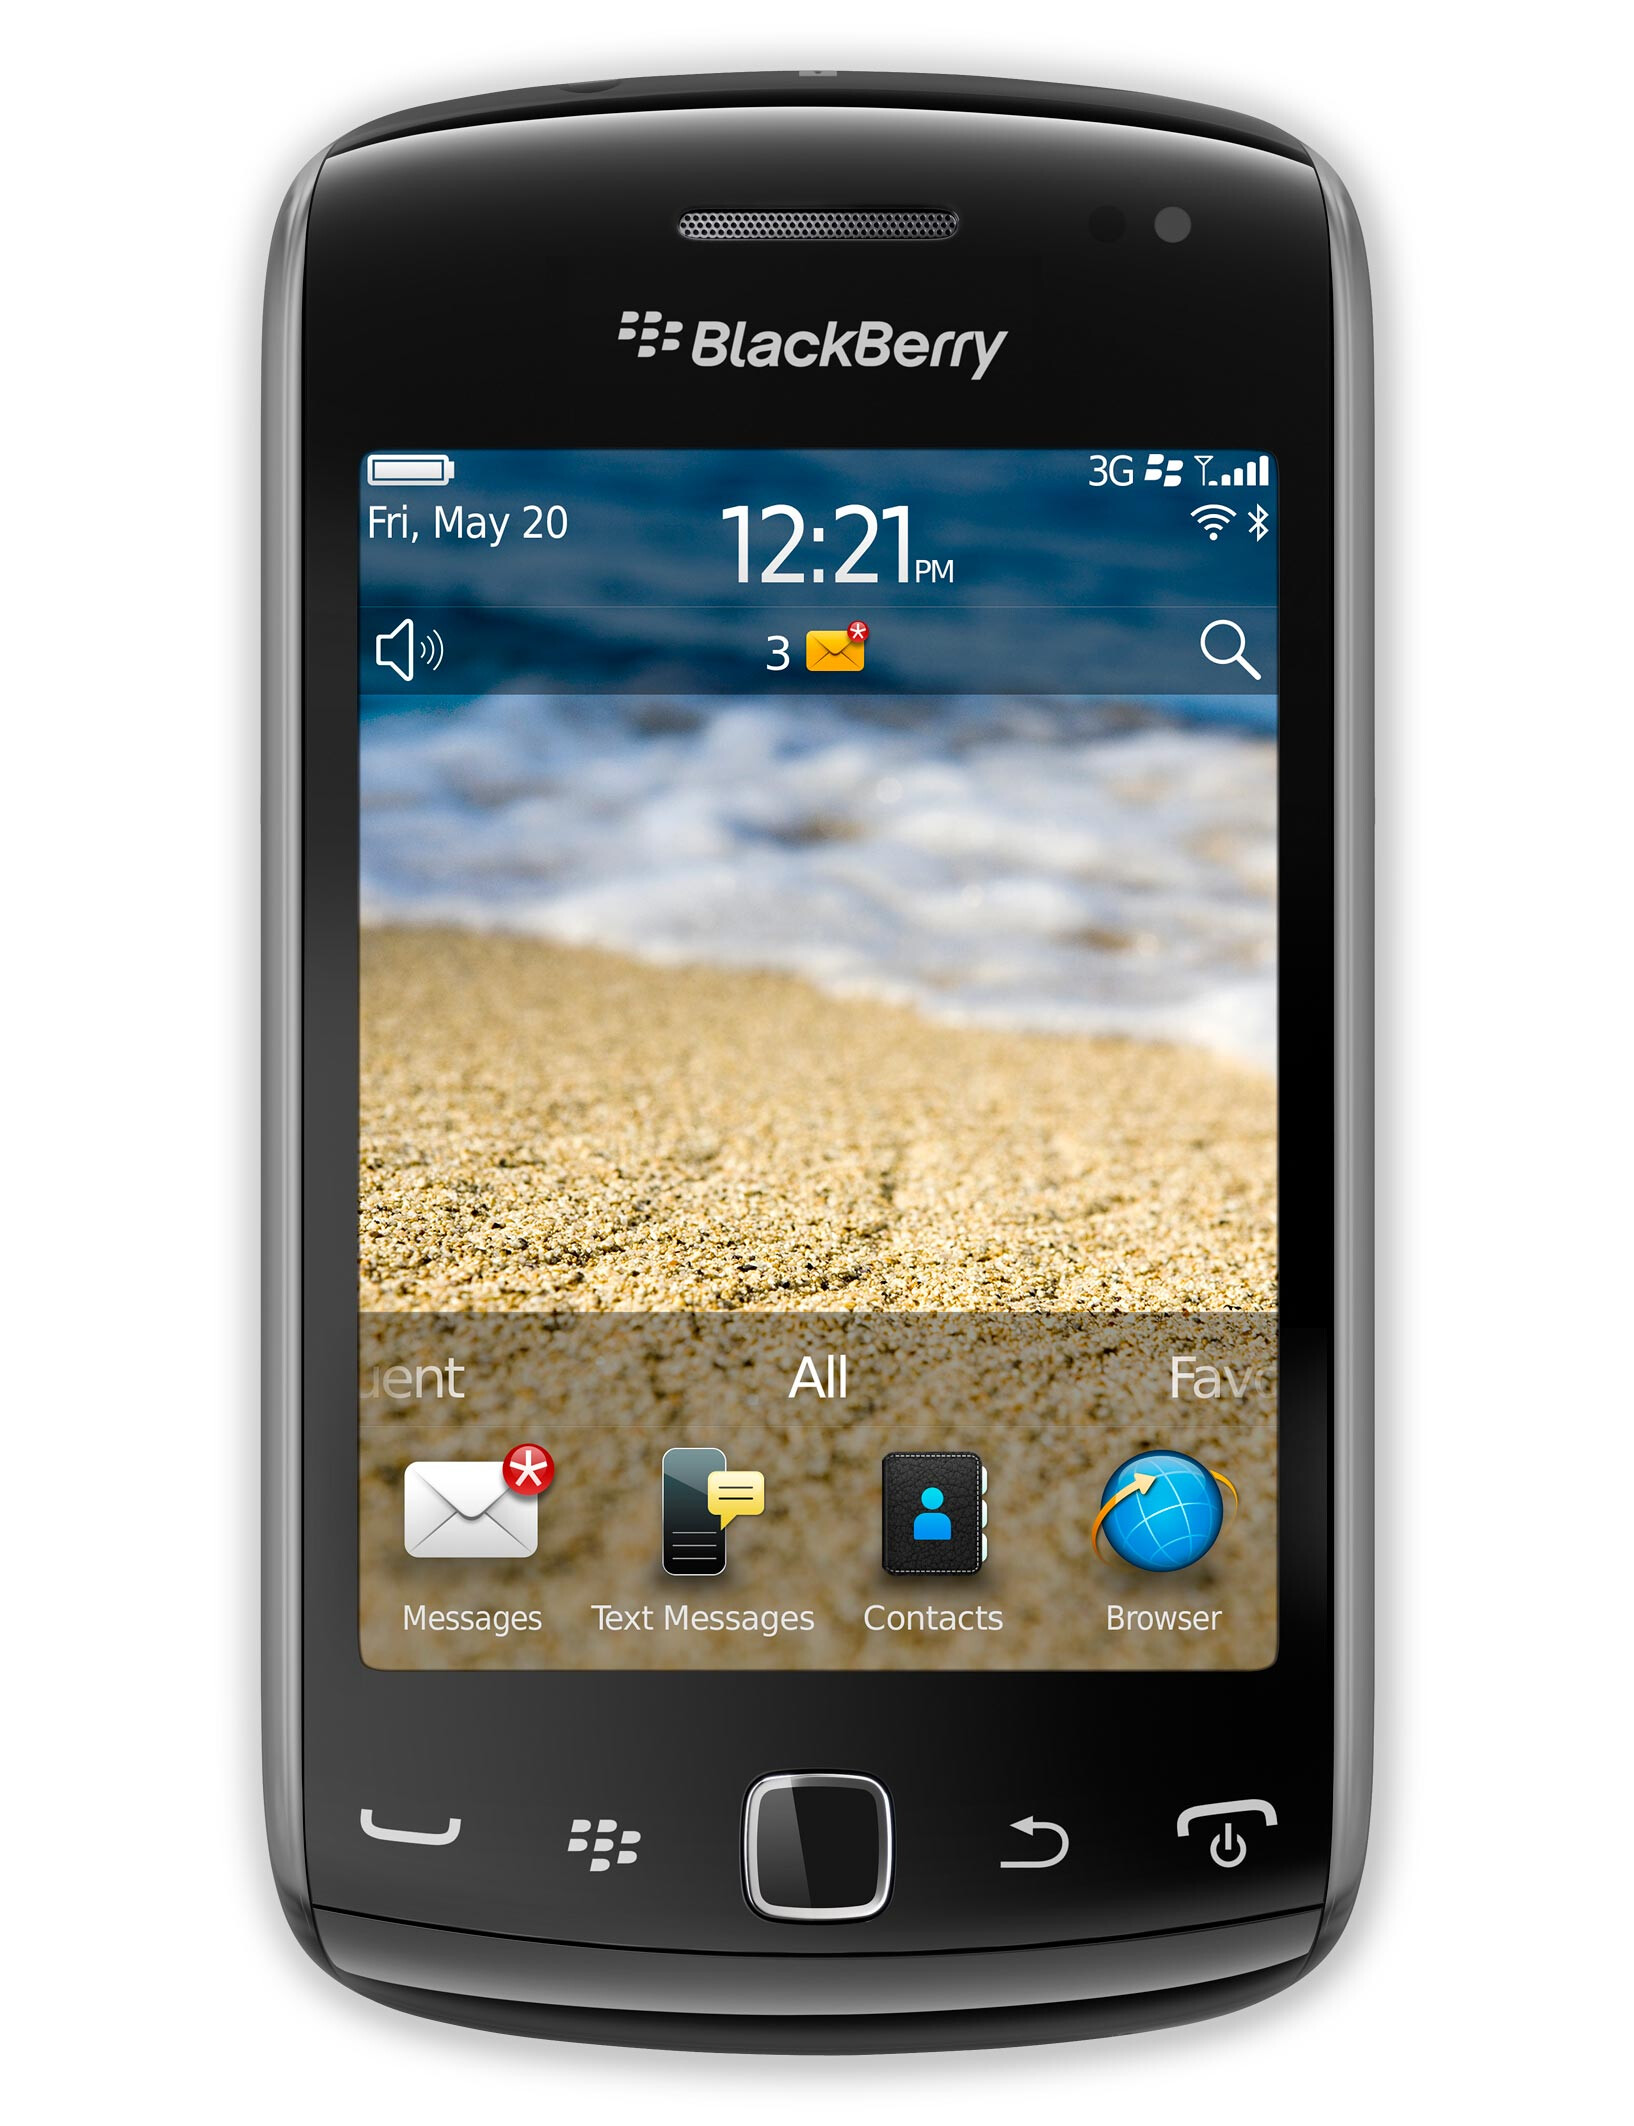 how to change blackberry id on phone